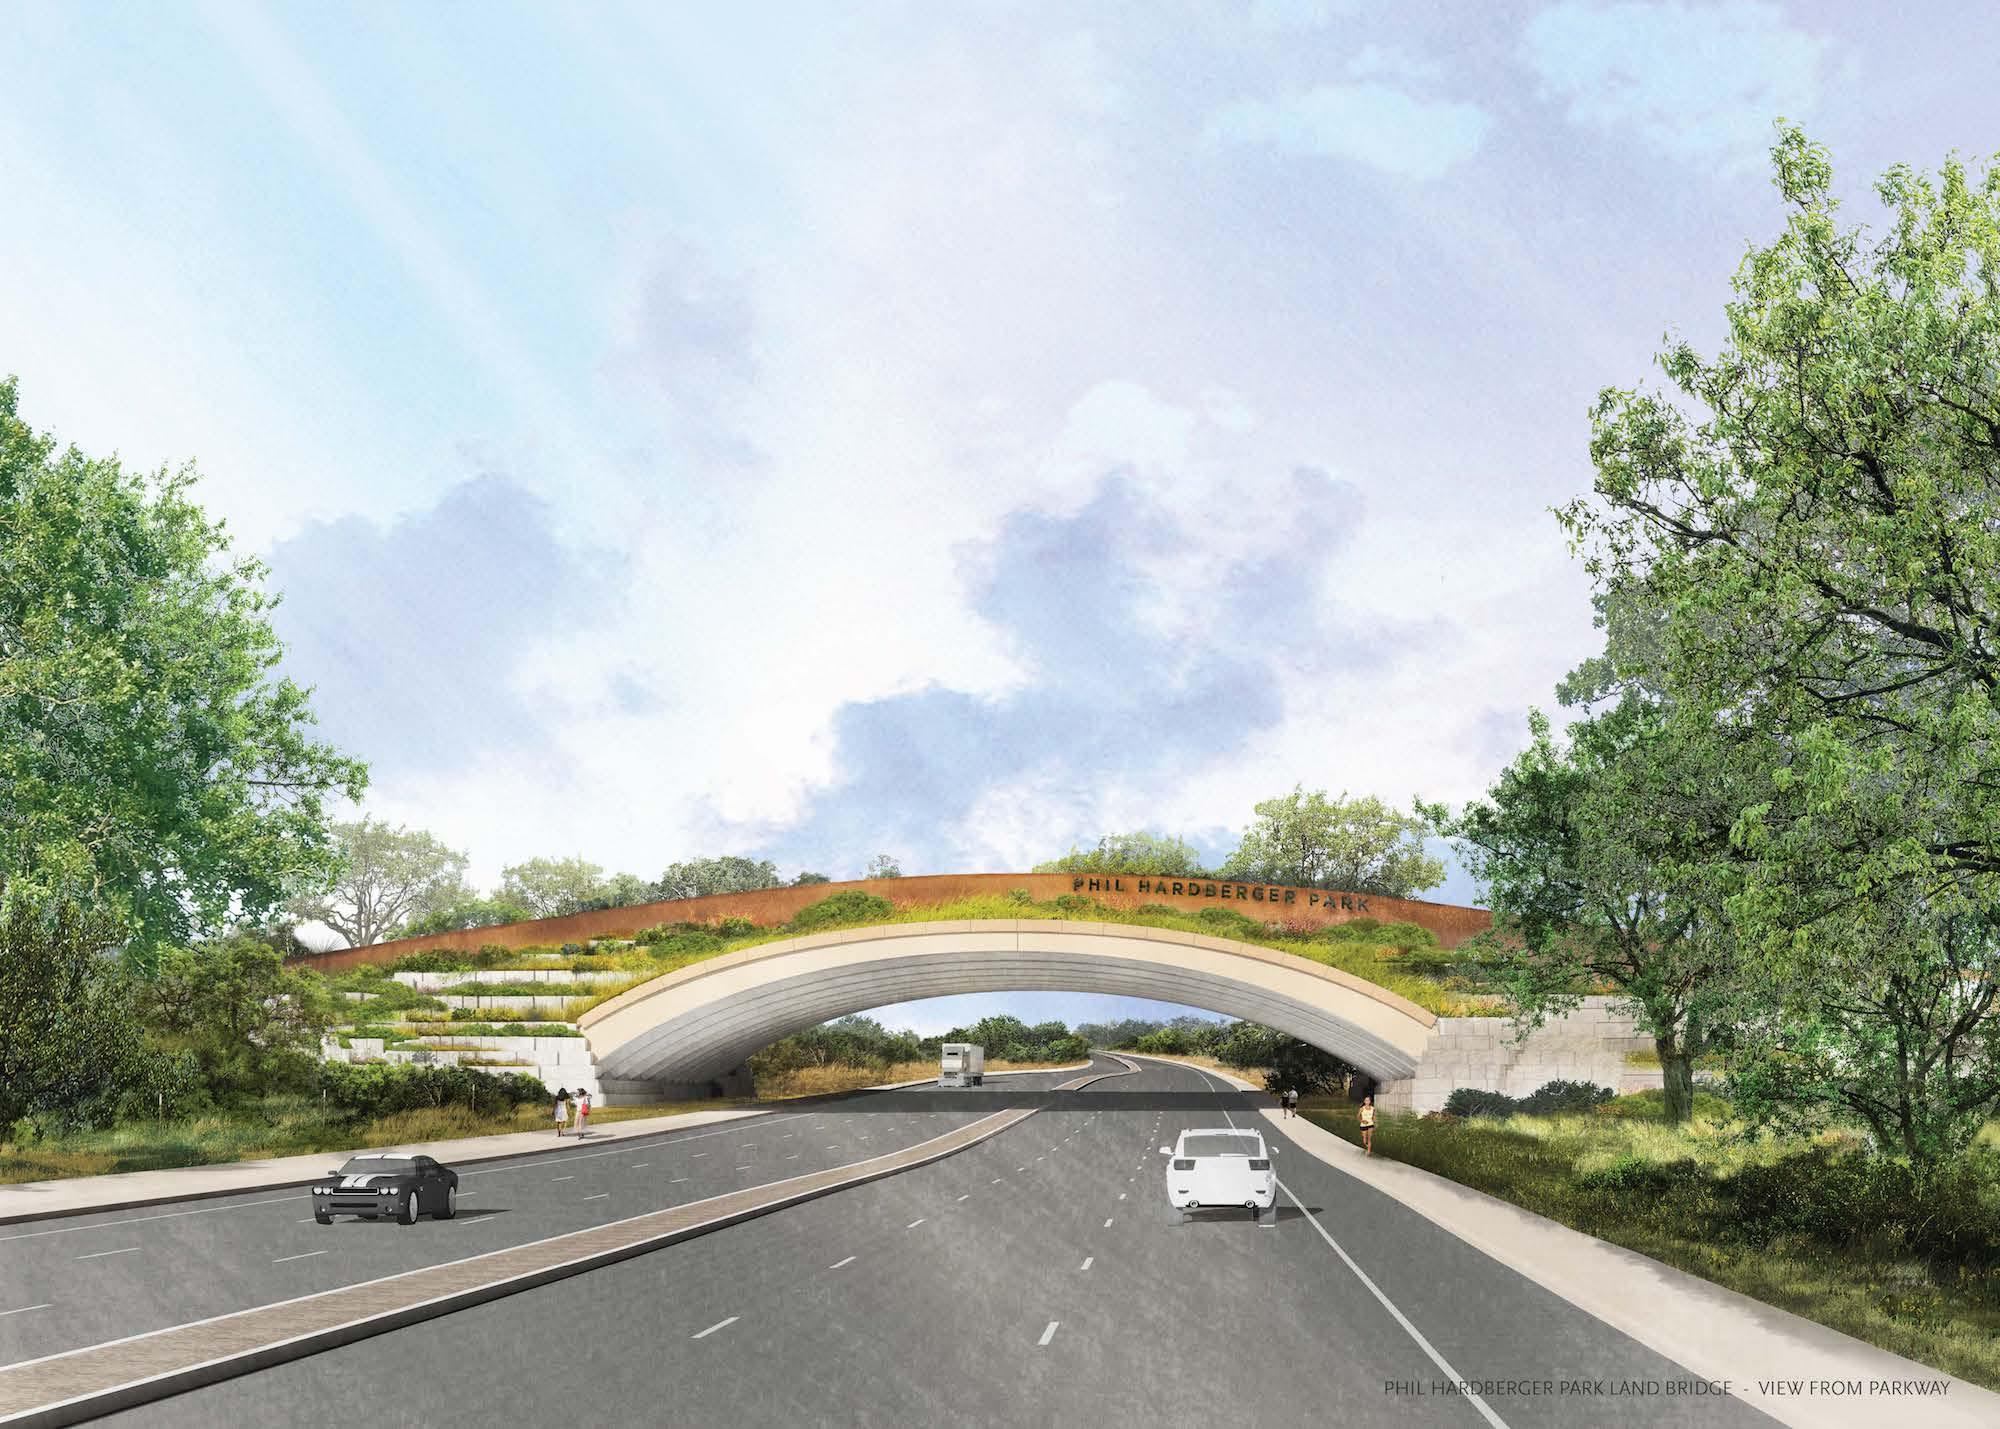 This updated rendering shows what the Phil Hardberger Park land bridge will look like to motorists traveling on Wurzbach Parkway.